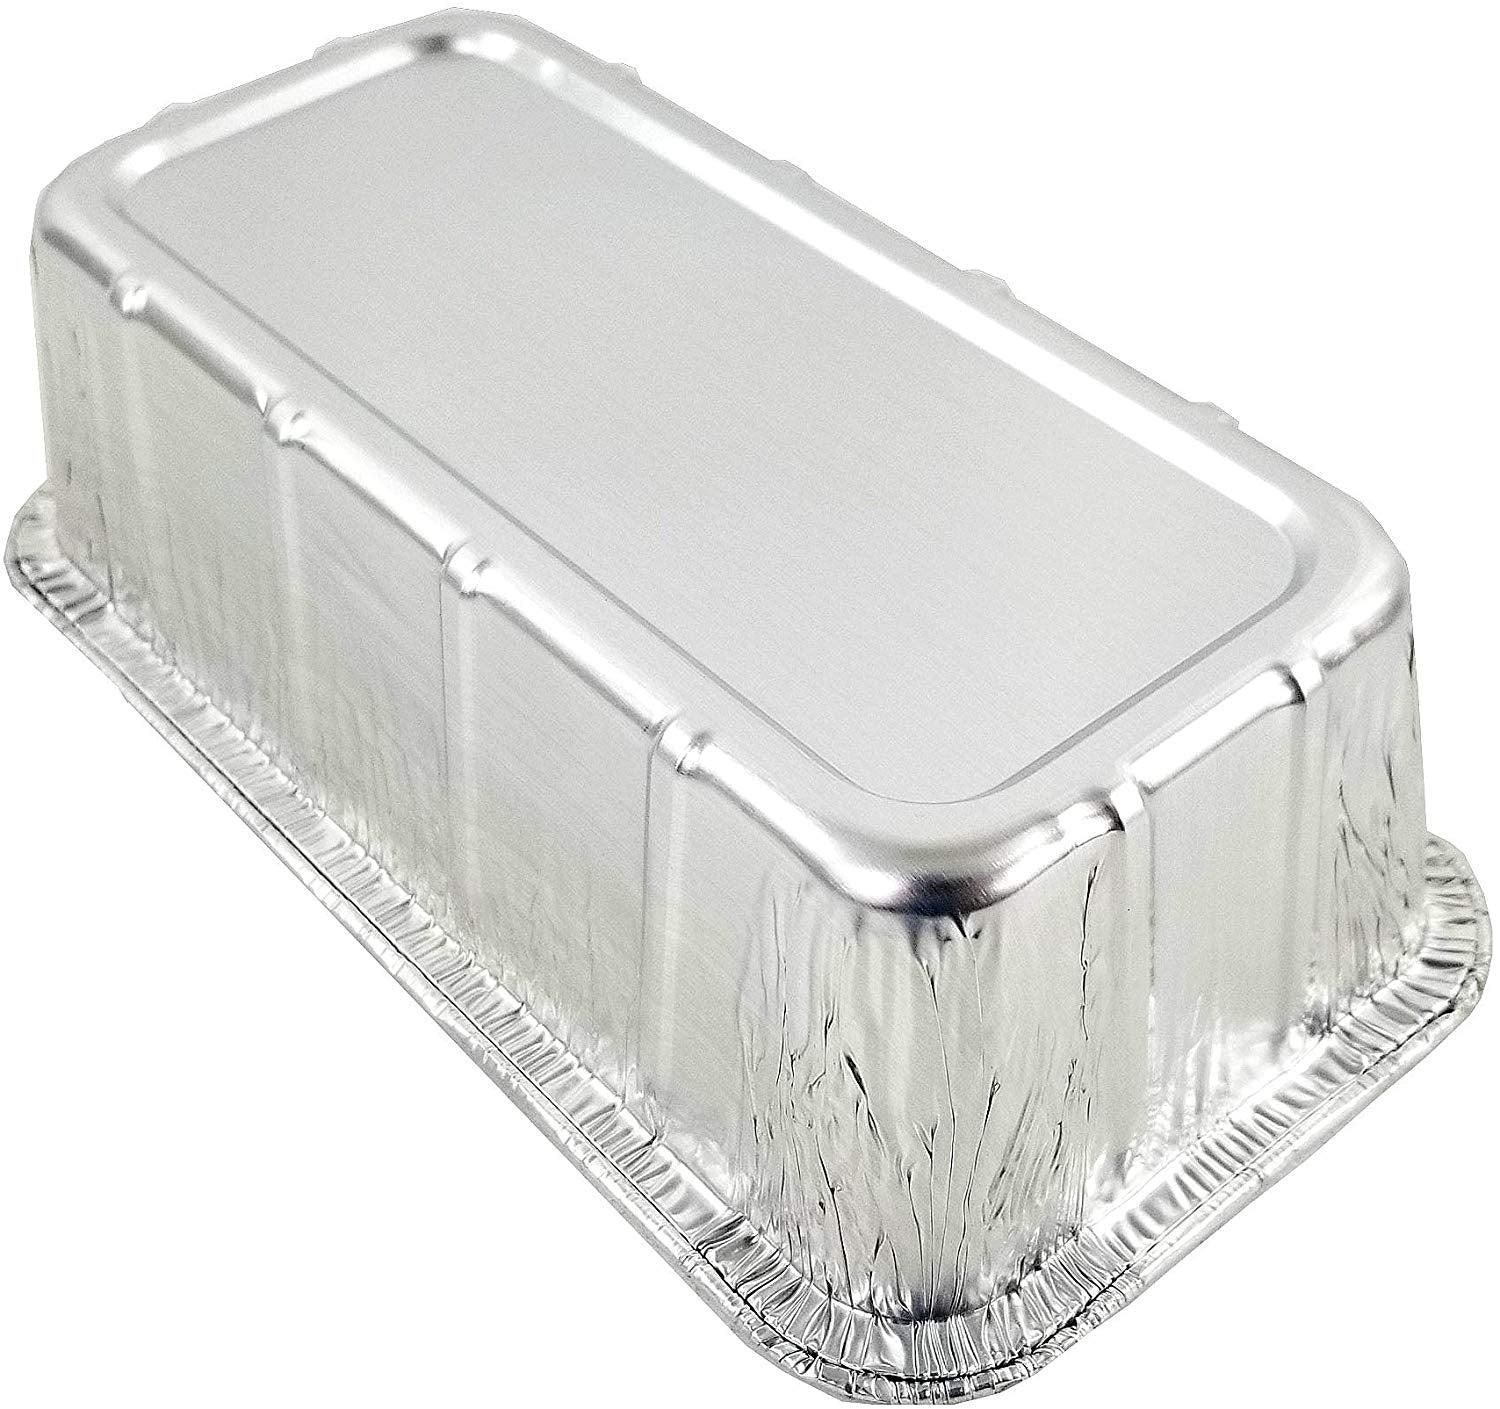 Durable 1 1/2 lb. Aluminum Foil Loaf Pan 500/CS